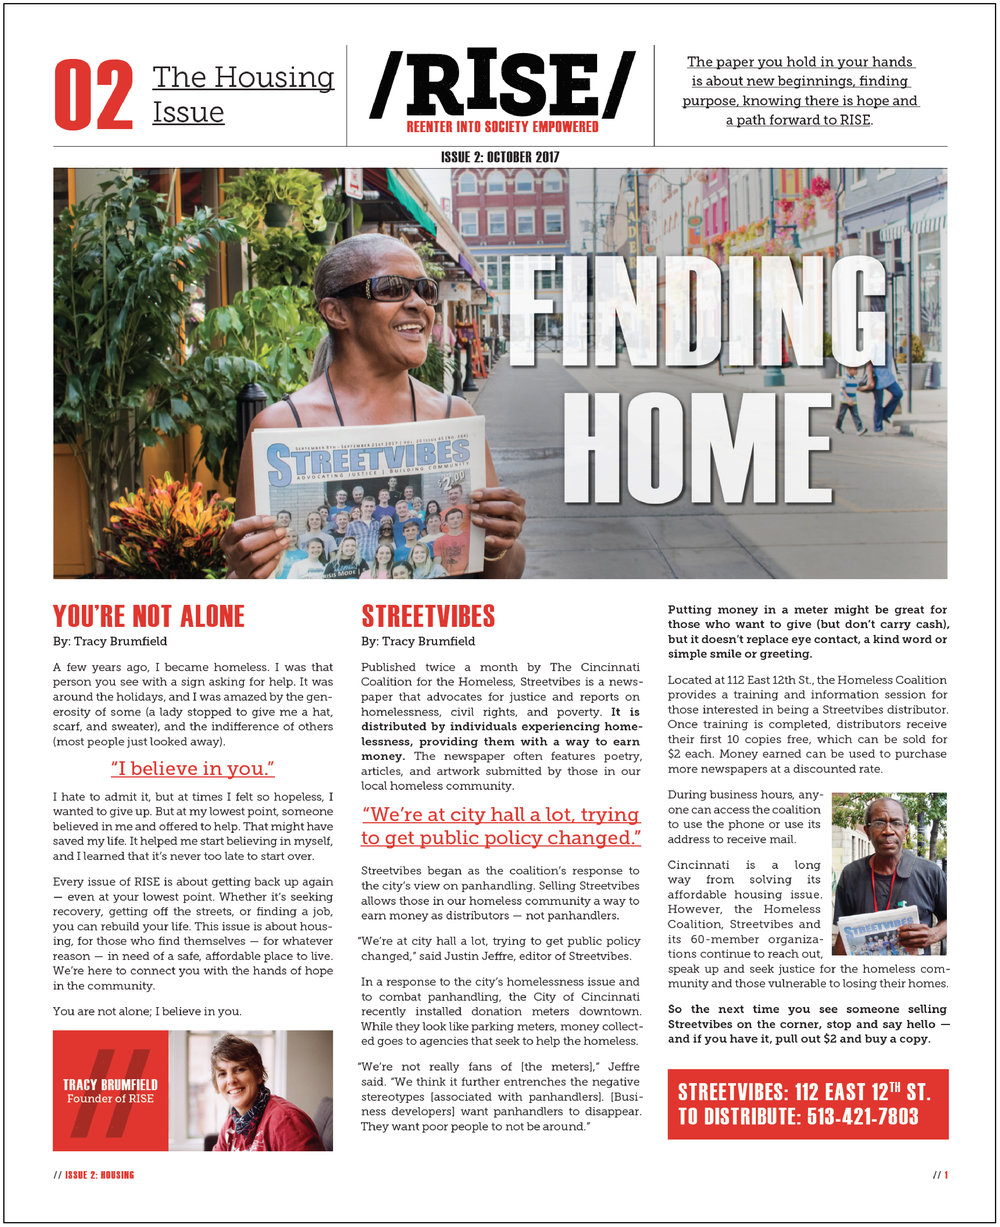 Issue 02 - THE HOUSING ISSUE